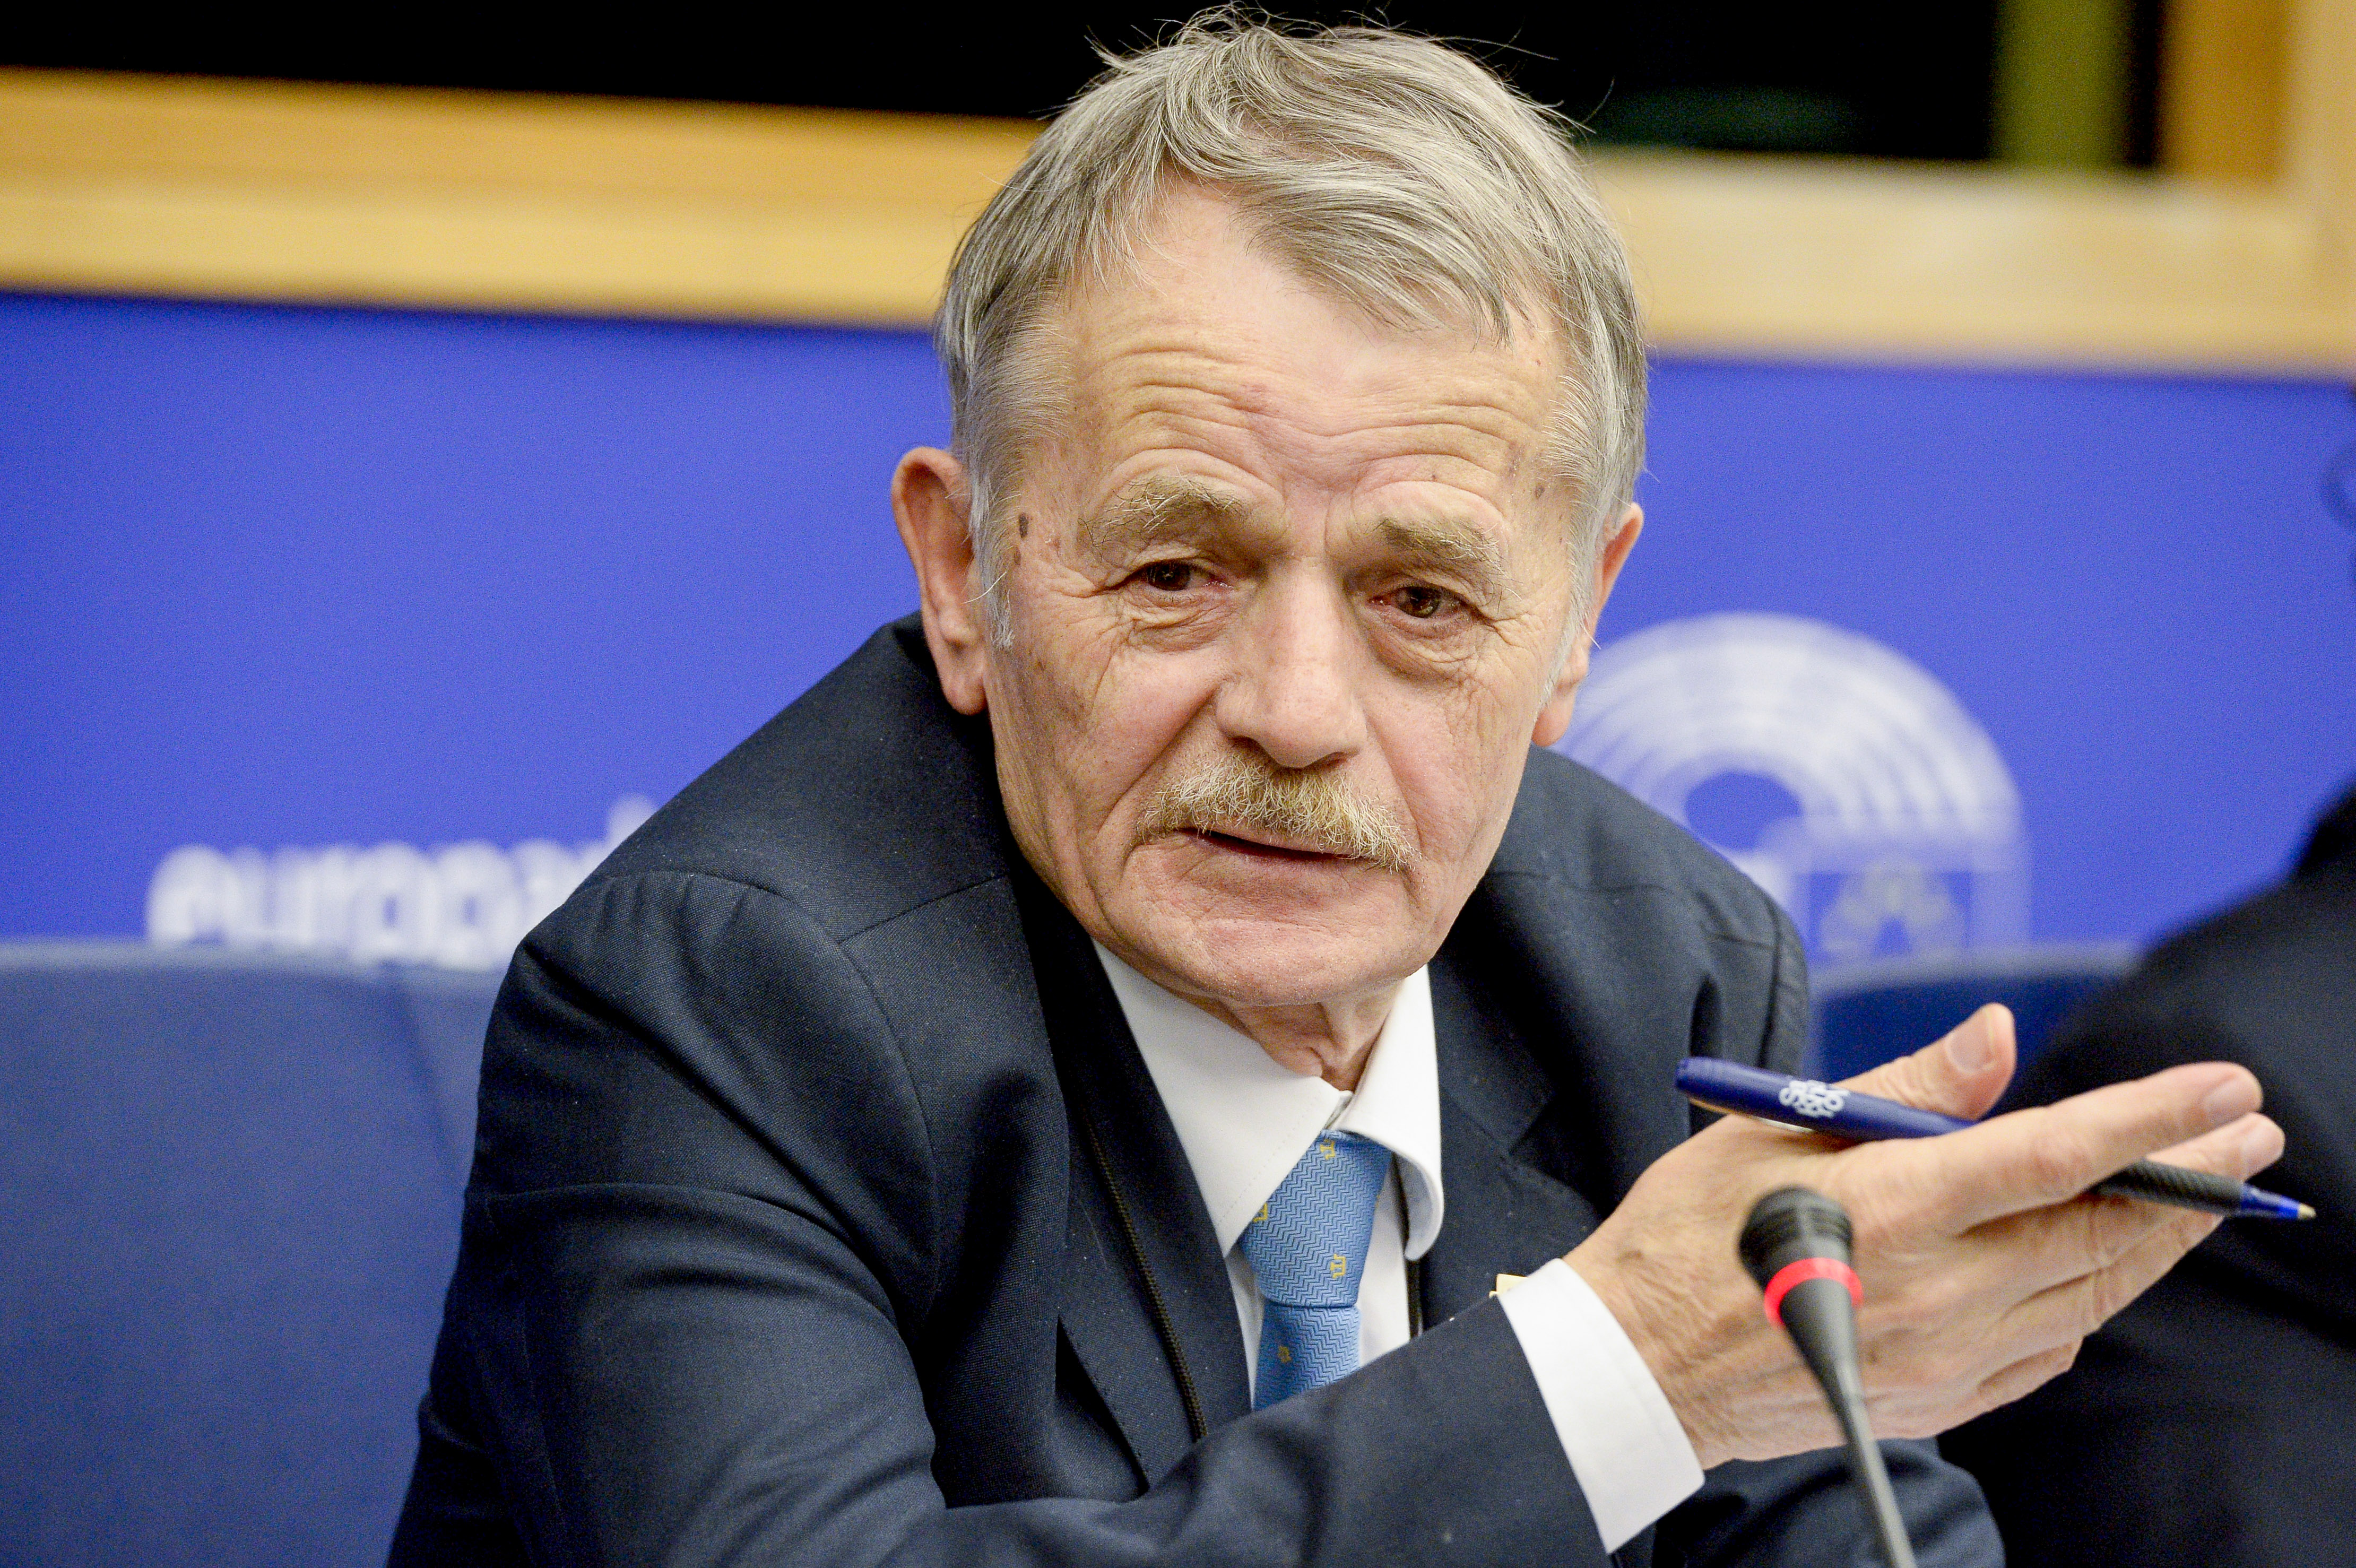 ECR Nominee for the Sakharov Prize, Mustafa Dzhemilev, has made it to the shortlist